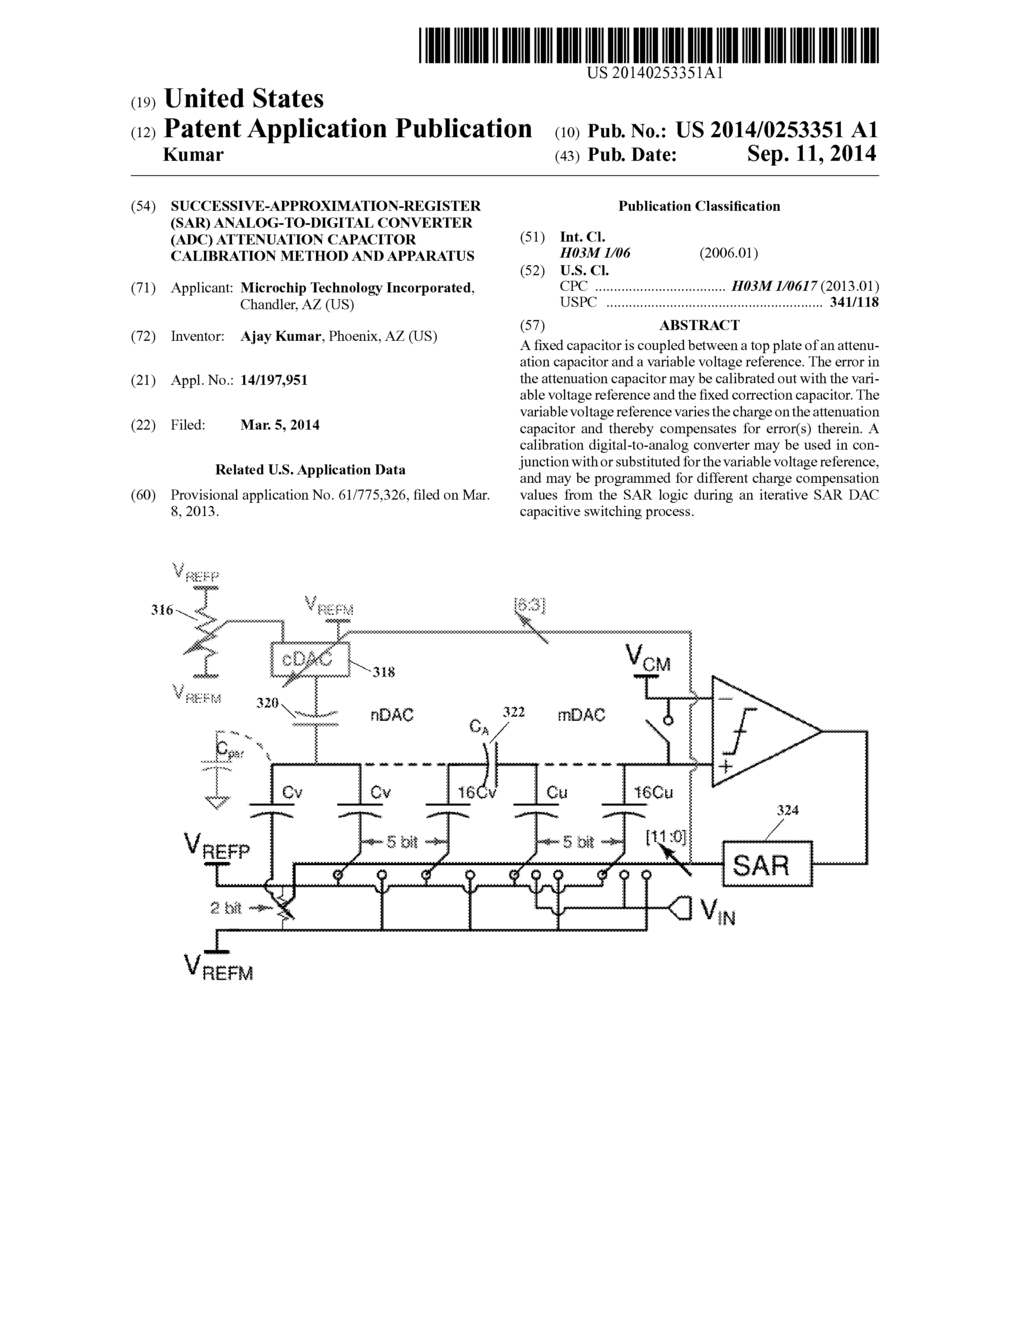 Successive Approximation Register Sar Analog To Digital Converter Approximate Adc Circuit Diagram Attenuation Capacitor Calibration Method And Apparatus Schematic